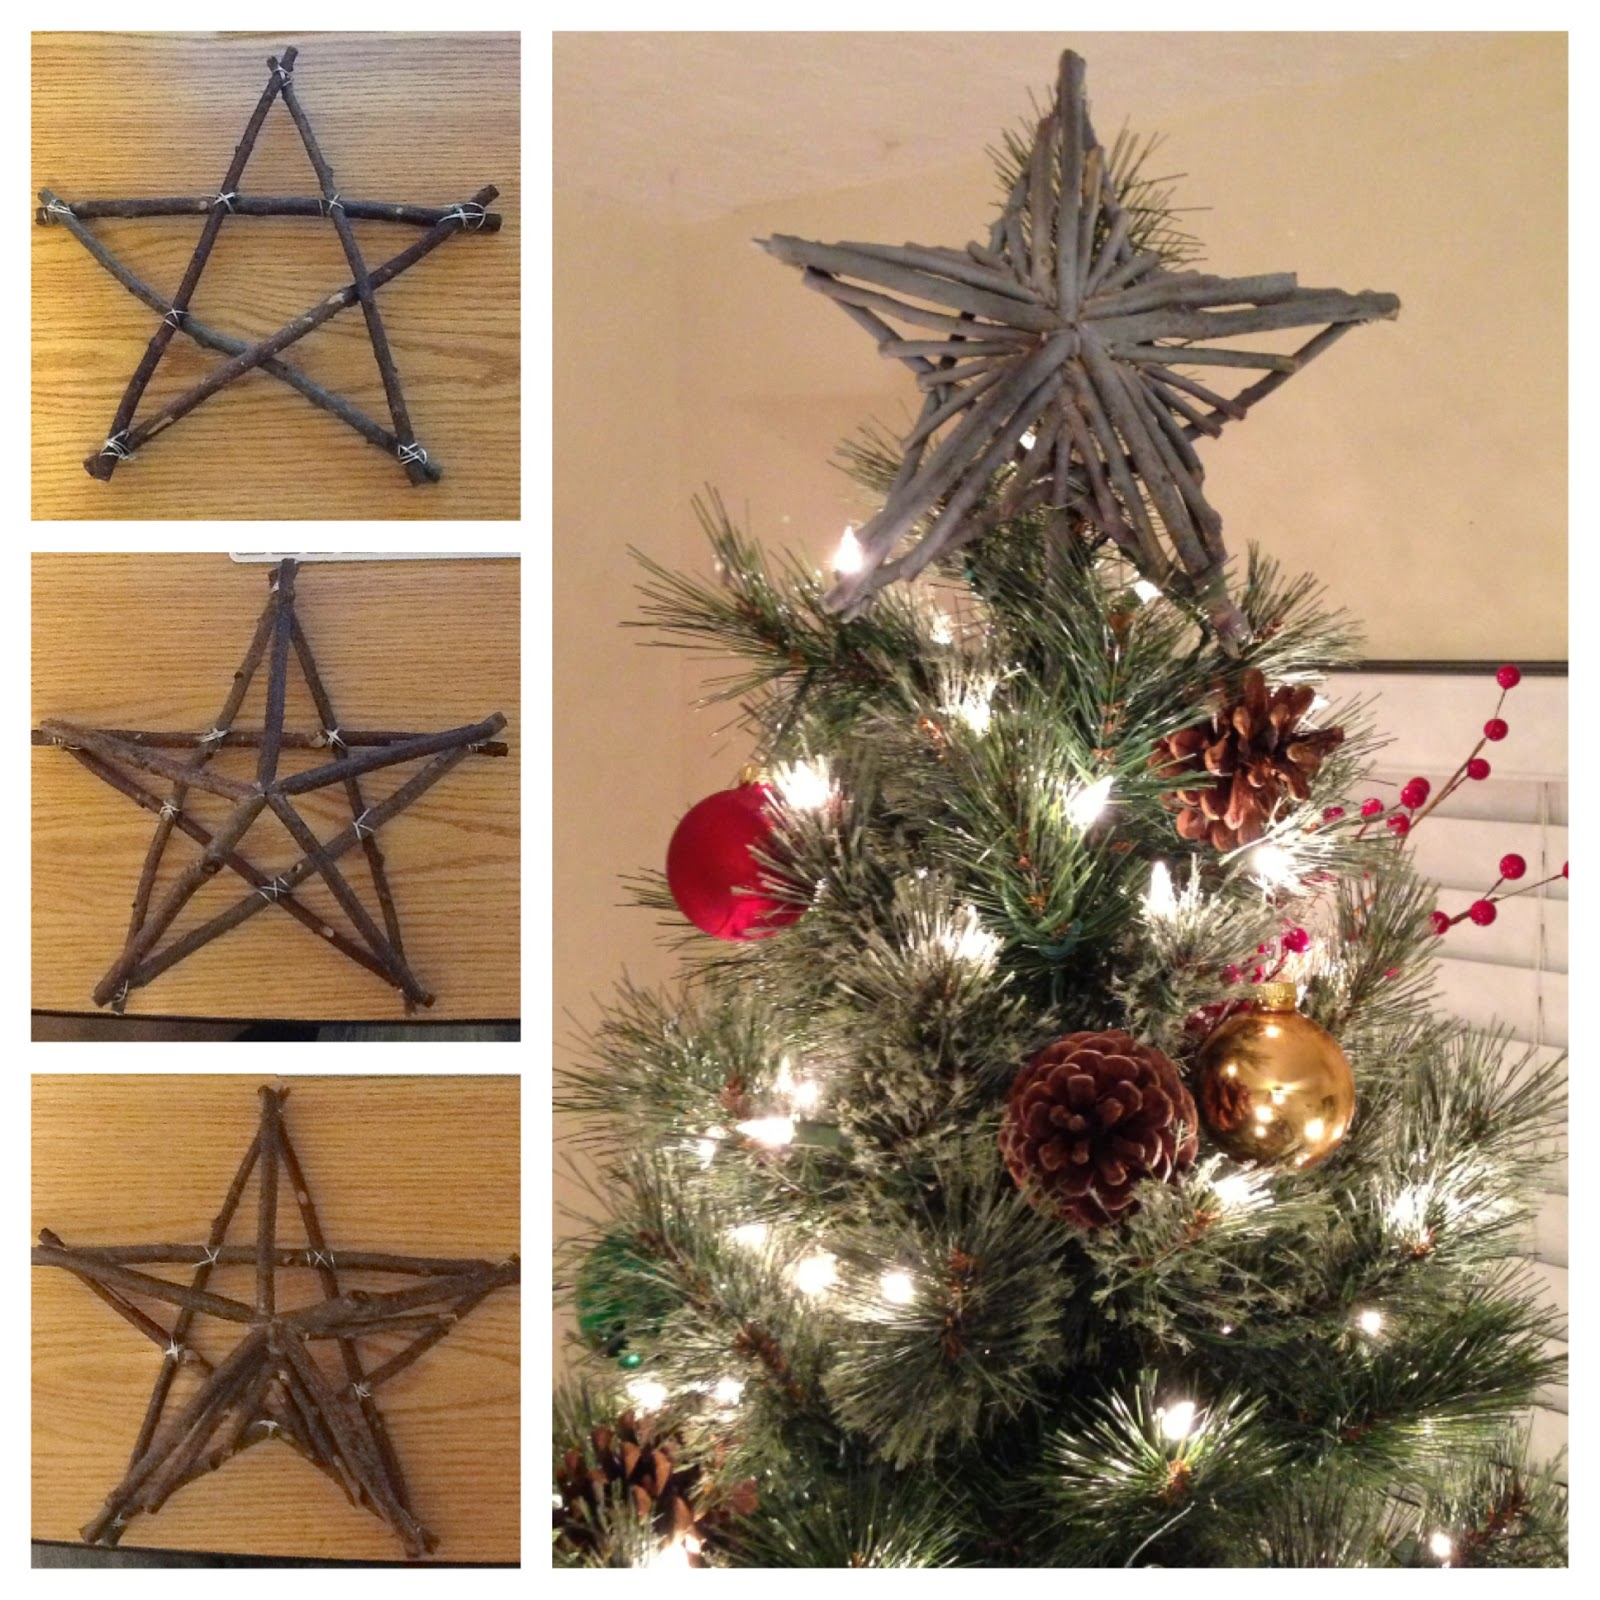 m 39 s projects rustic star tree topper. Black Bedroom Furniture Sets. Home Design Ideas